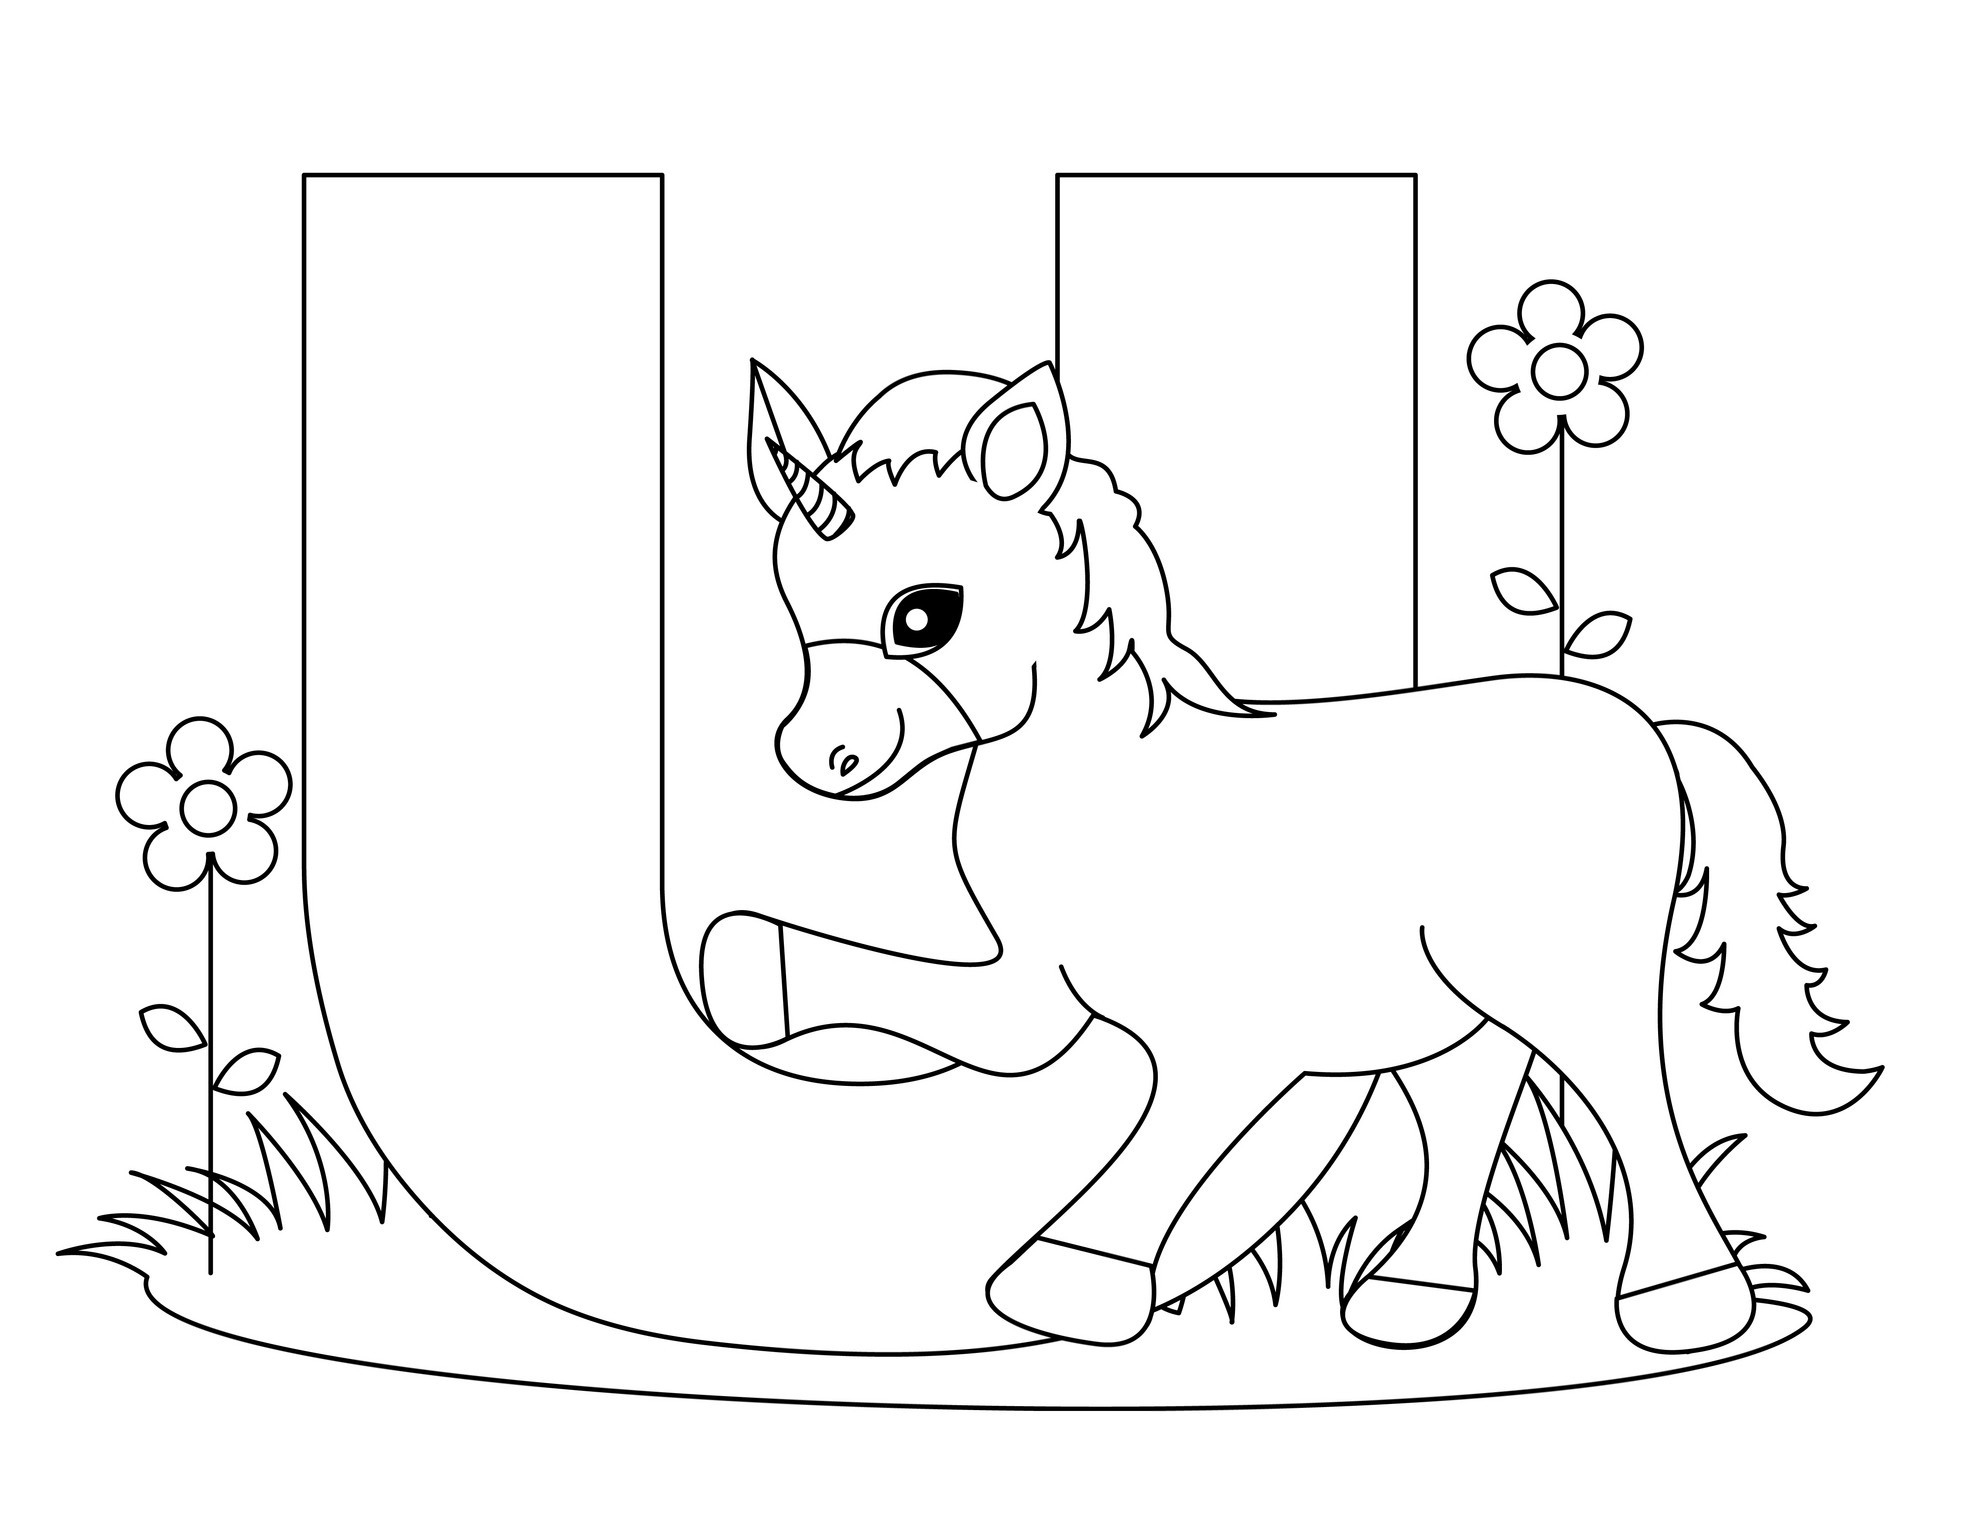 Coloring Pages For U : Free printable alphabet coloring pages for kids best